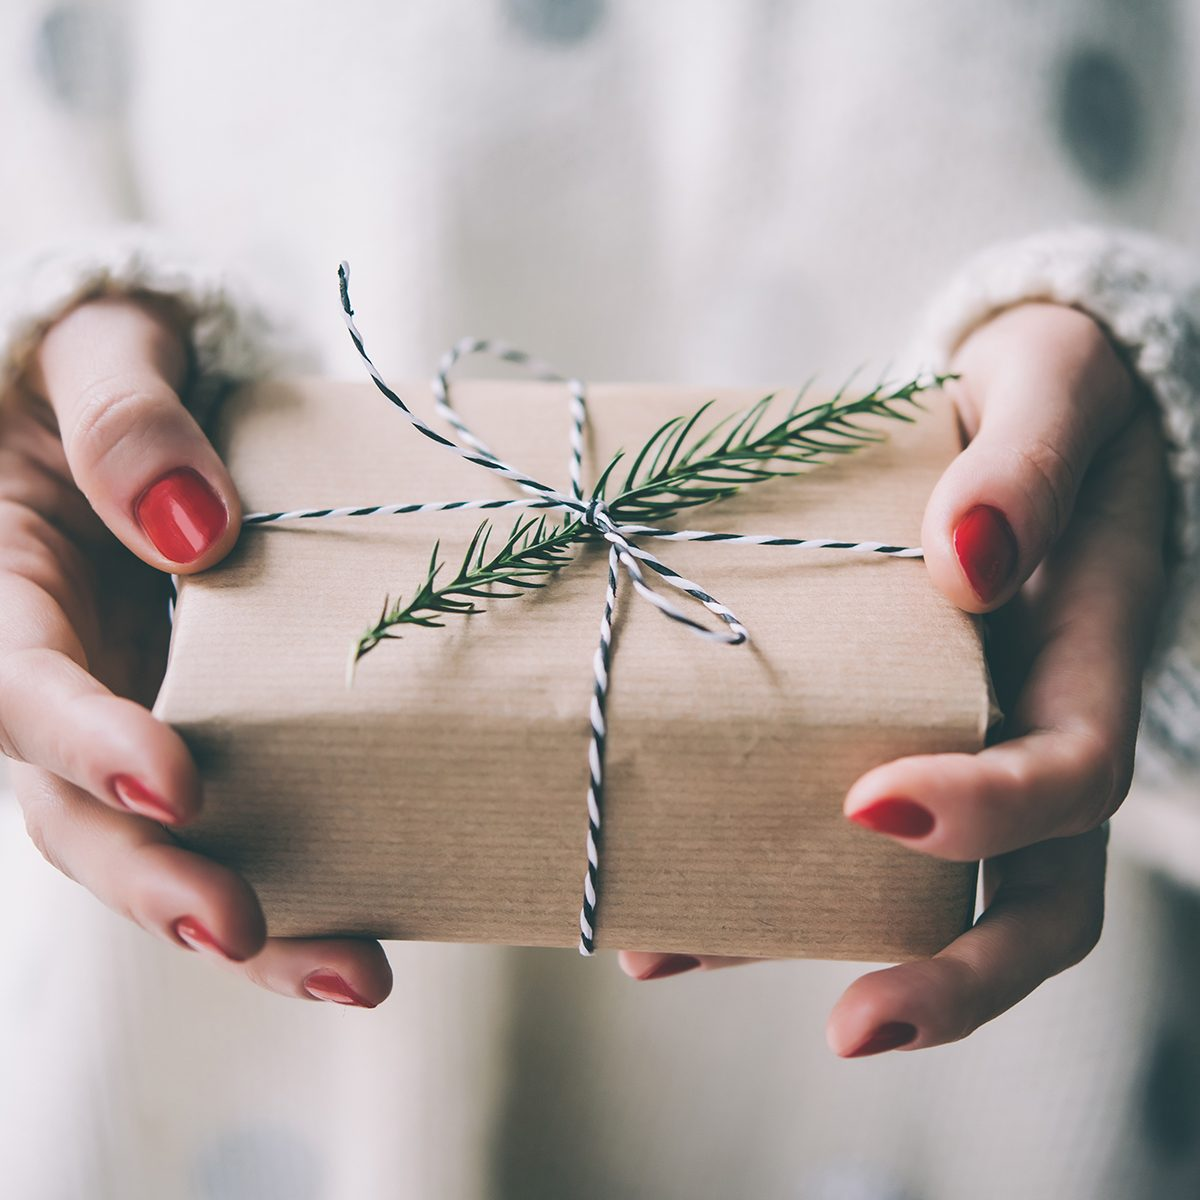 Woman's hands hold christmas or new year decorated gift box.